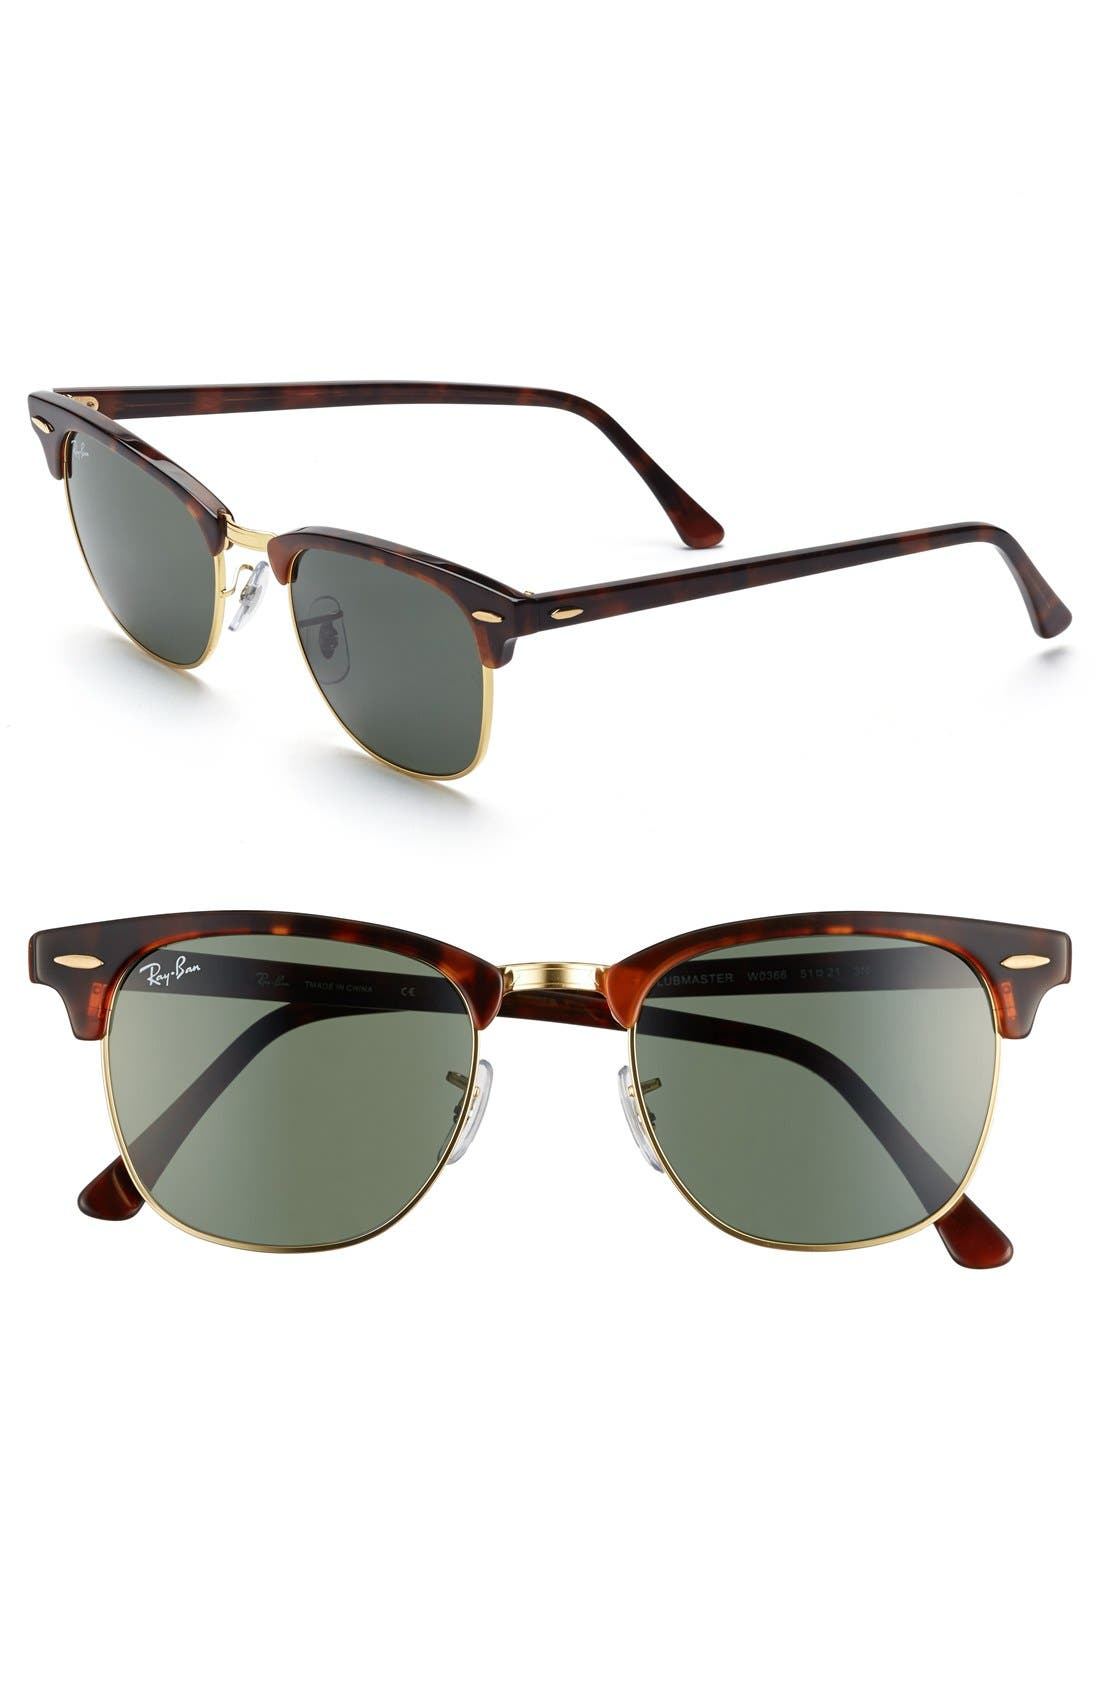 Main Image - Ray-Ban 'Classic Clubmaster' 51mm Sunglasses